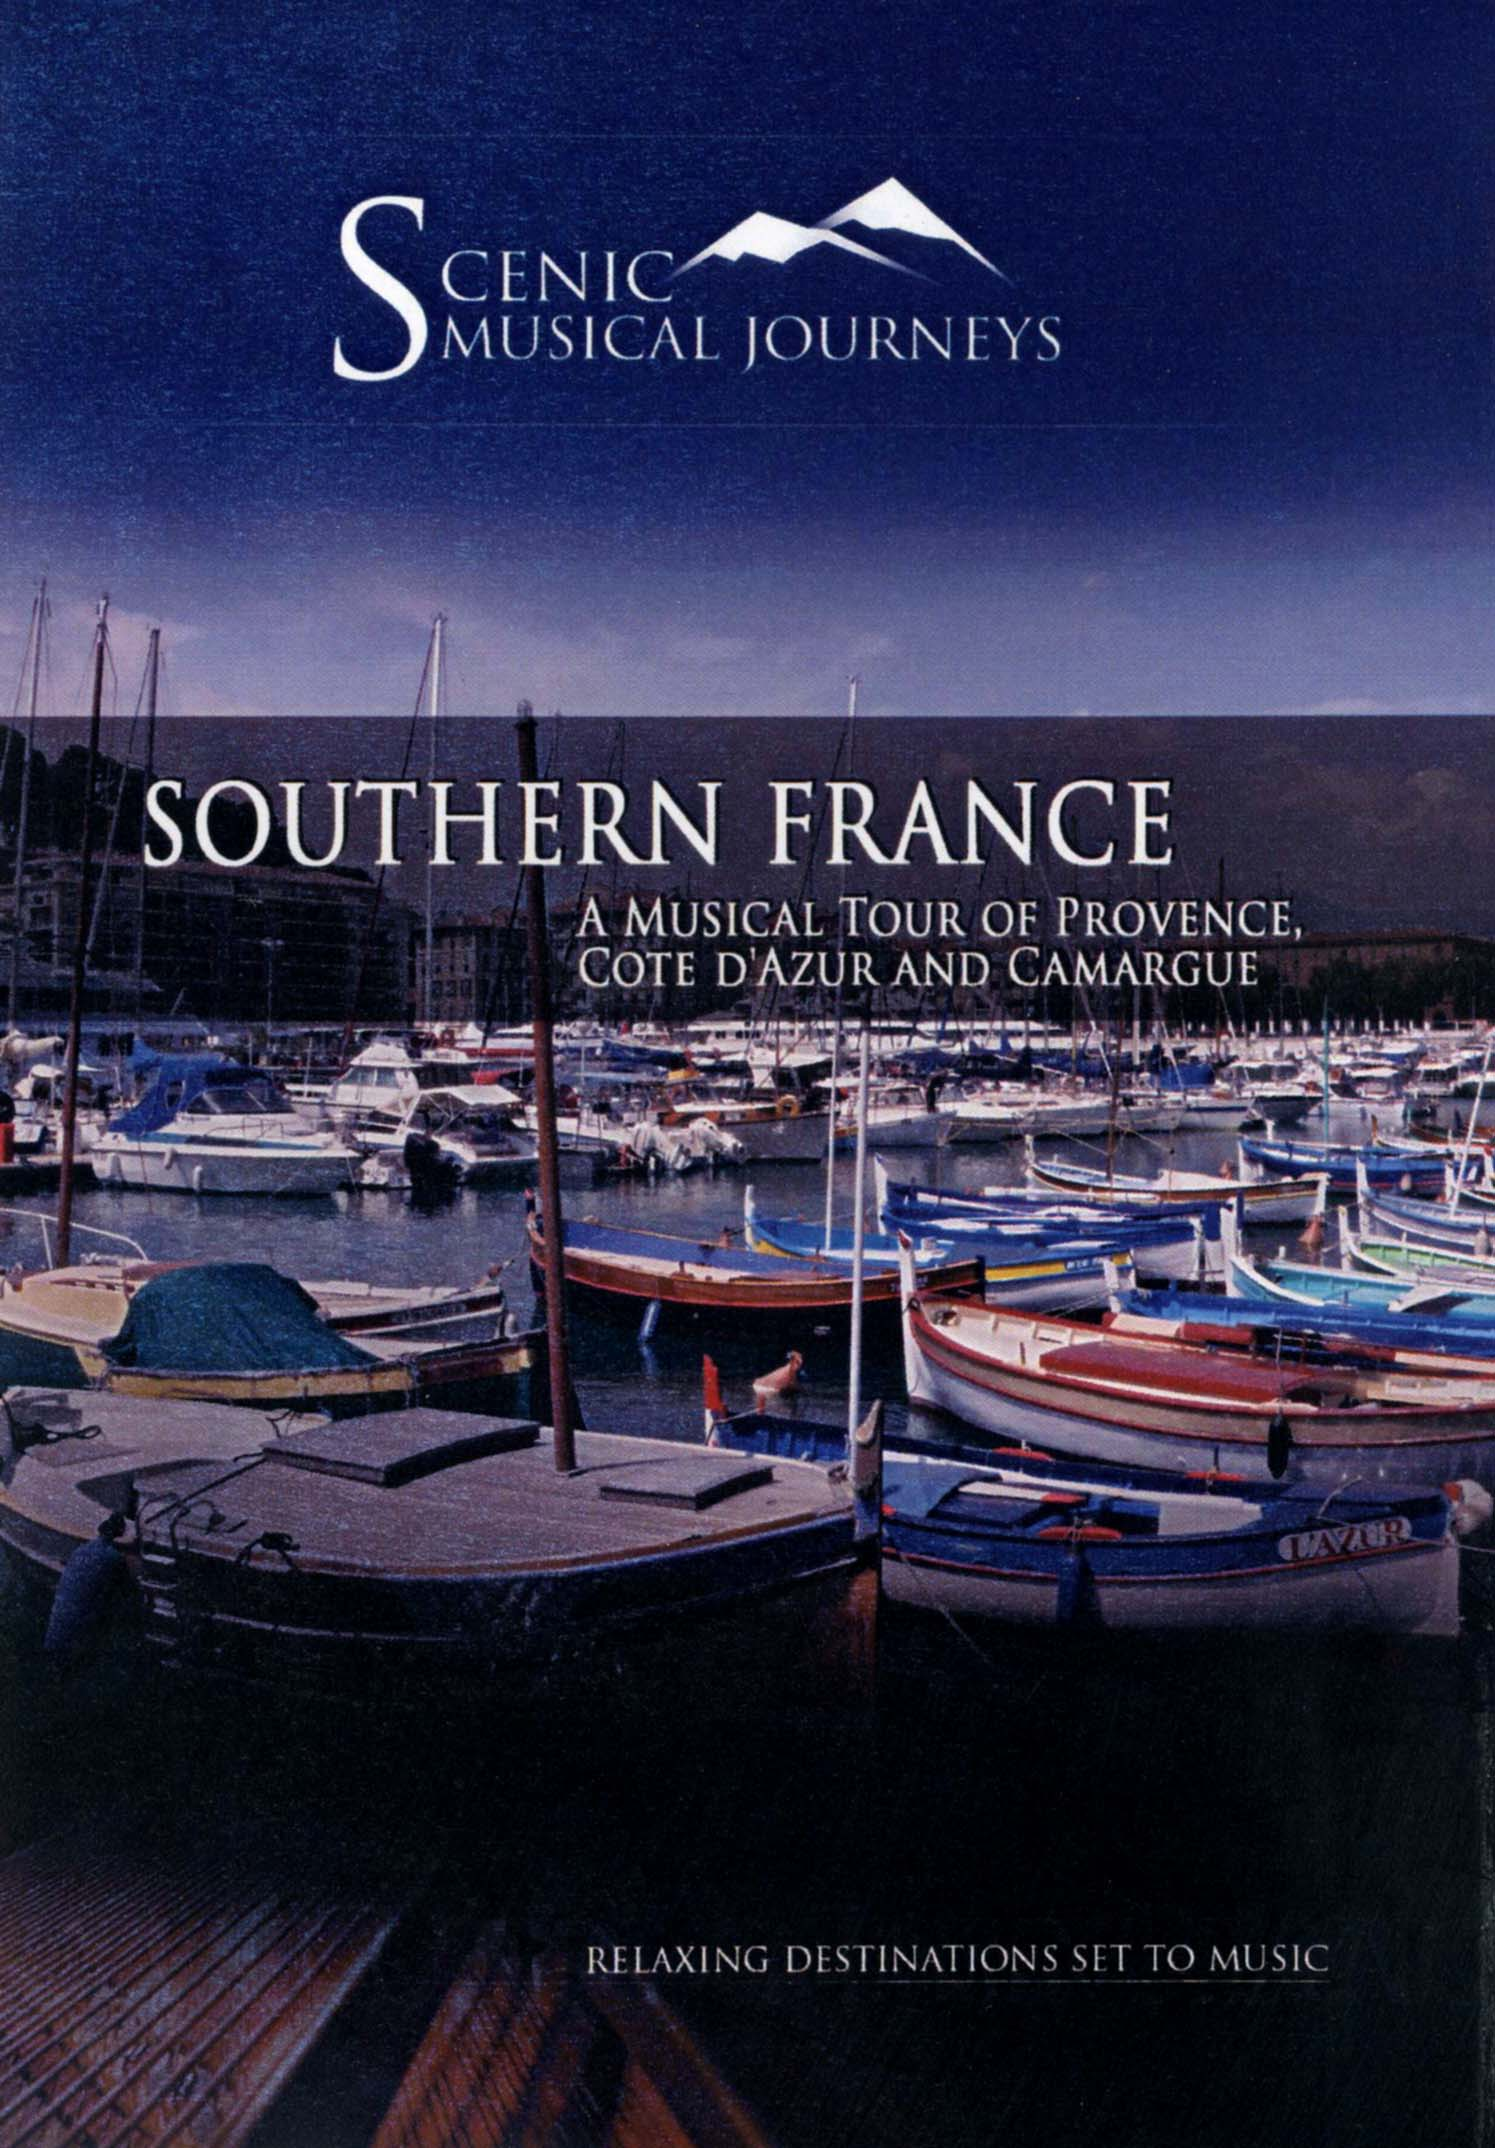 Scenic Musical Journeys: Southern France - A Musical Tour of Provence, Cote D'Azur and Camargue